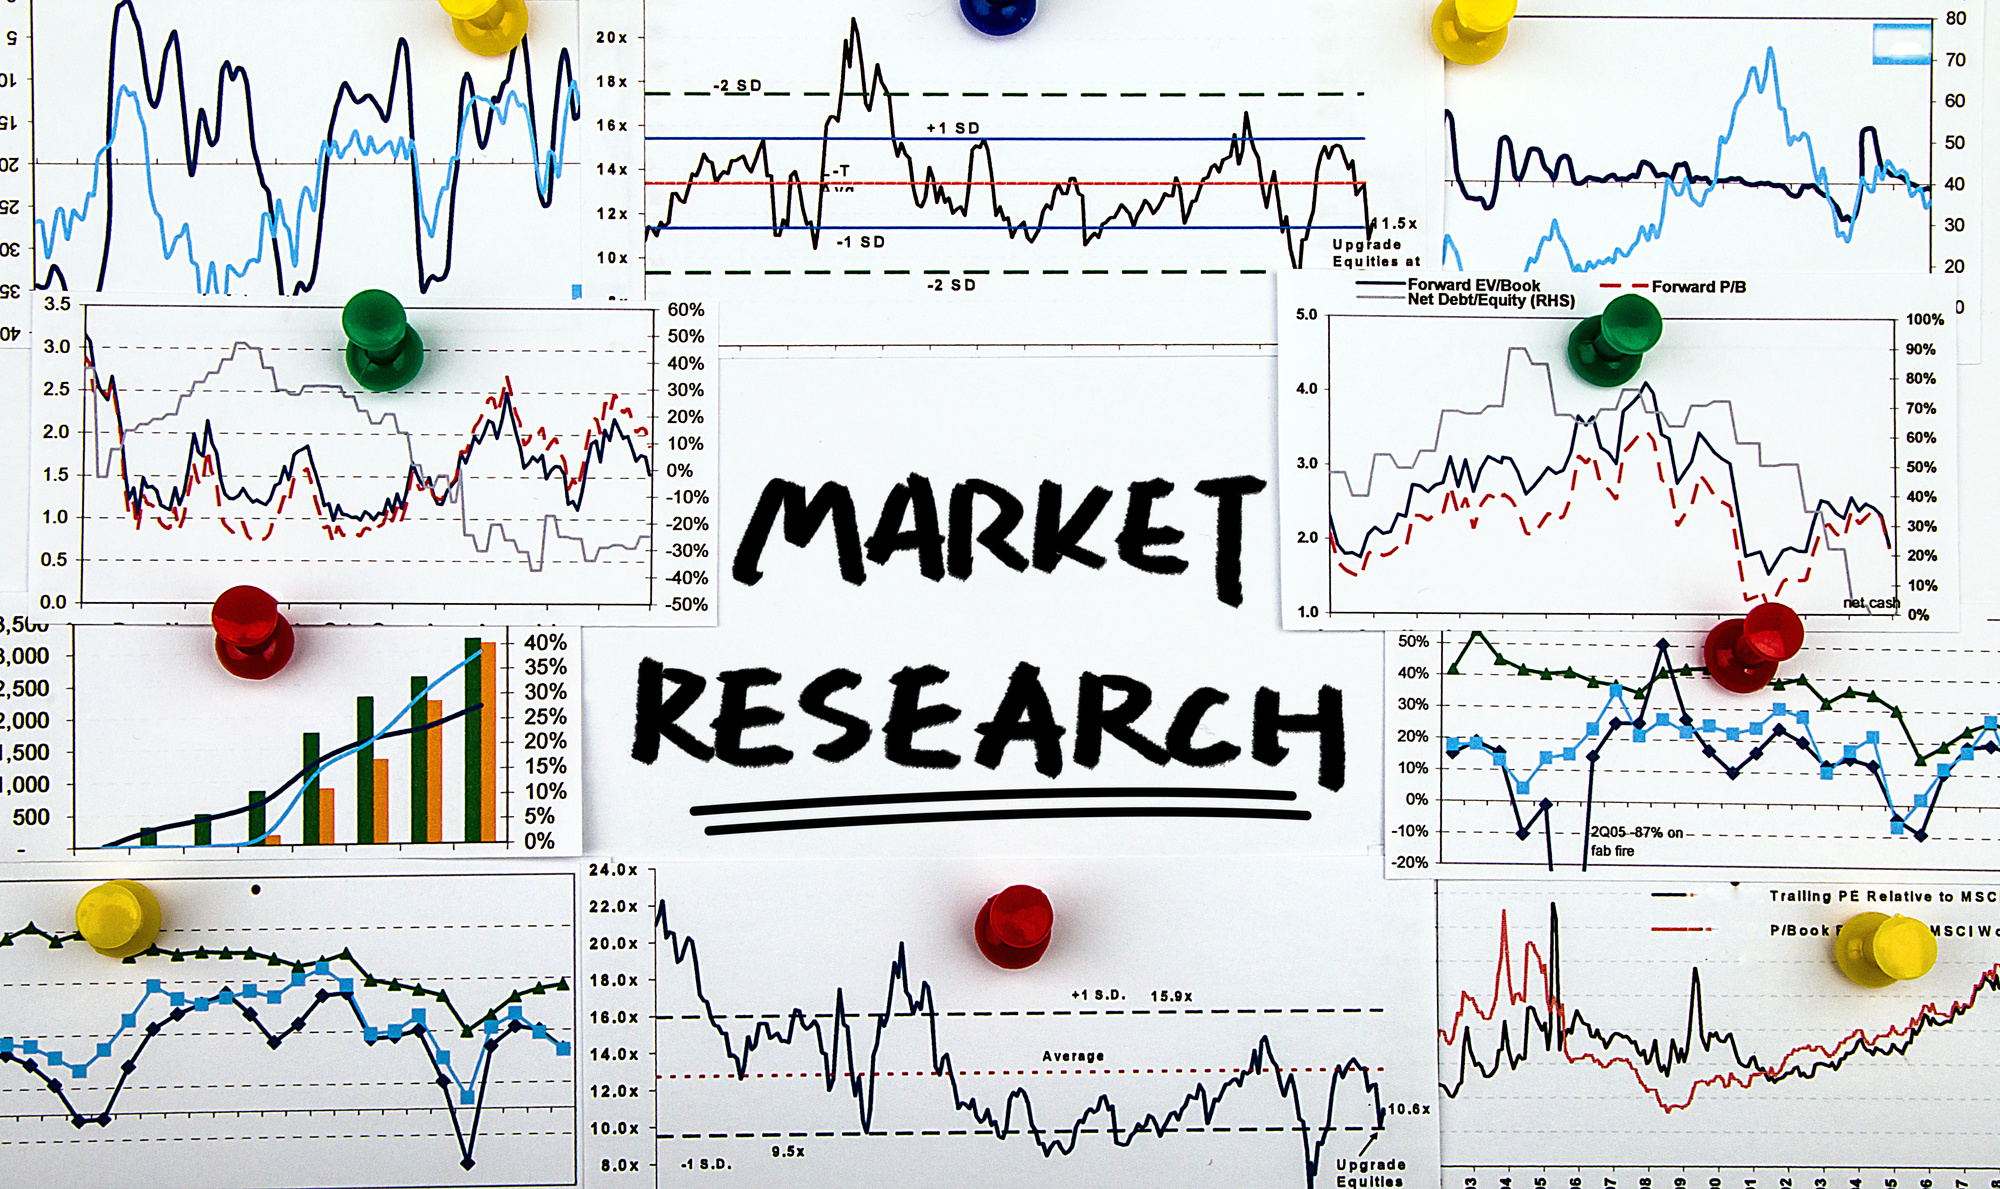 5 Market Research Methods That'll Help You Find Your Target Audience